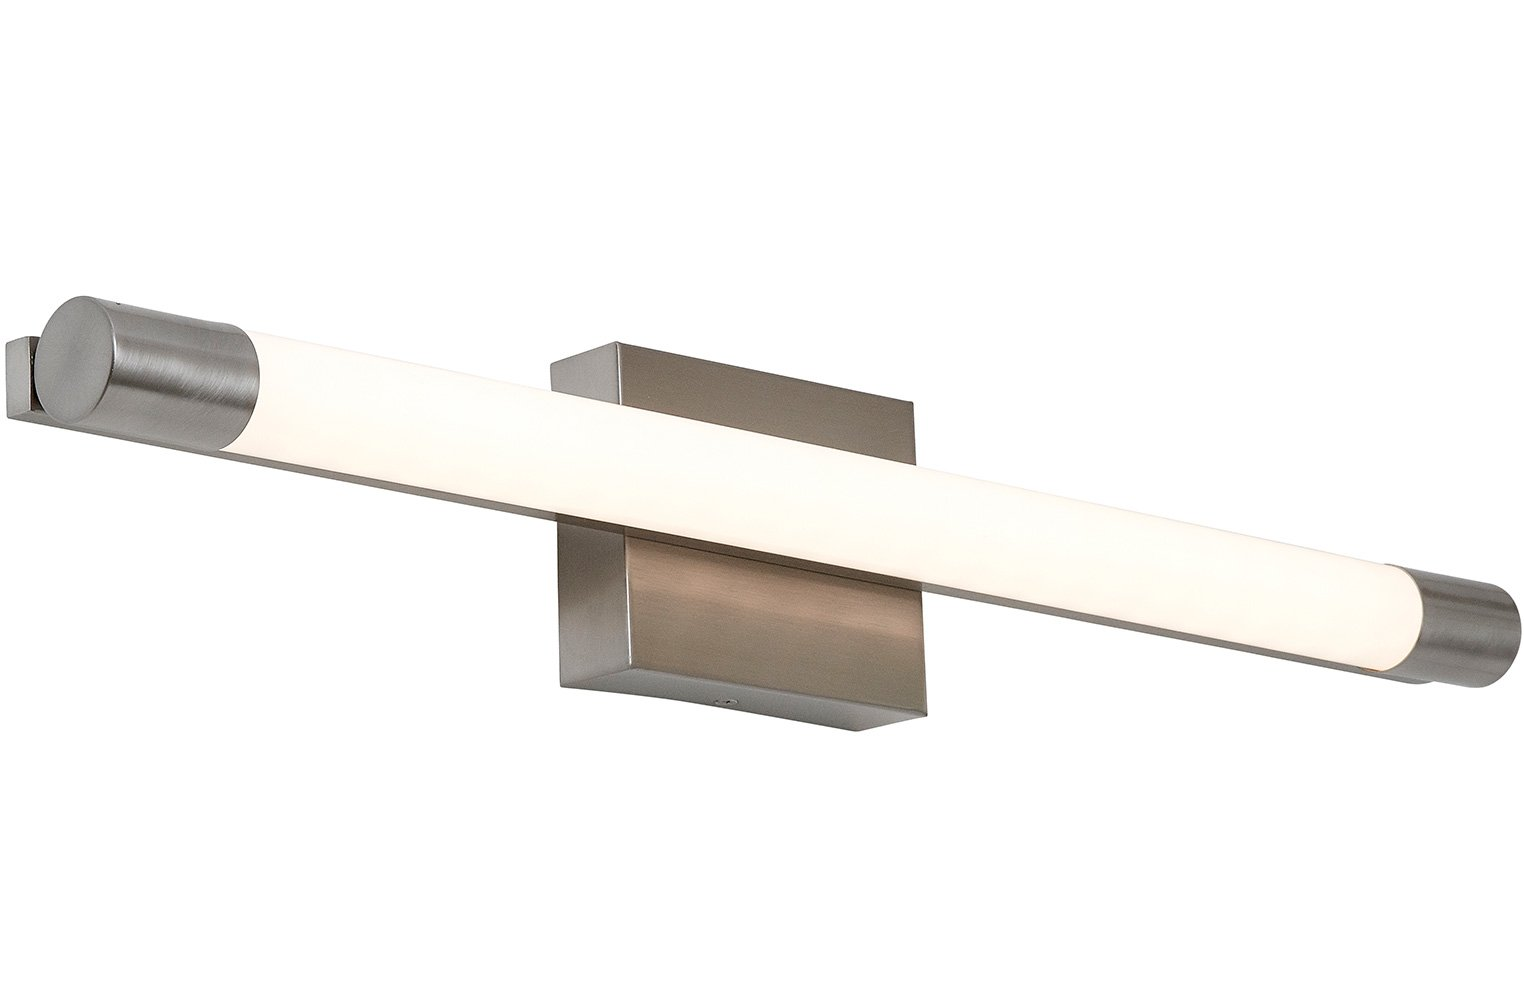 "New Slim Line Modern Frosted Bathroom Vanity Light Fixture | Contemporary Sleek Dimmable LED Cylinder Bar Design | Vertical or Horizontal Tube Wall Sconce | 3000K Warm White 28"" - SOPHISTICATED DESIGN: A simple clean light bar offers modern design with beautiful lines and a contemporary feel. Brushed nickel finishes encapsulate a cylindrical glass free frosted sconce with even light distribution and exceptional color accuracy. 3000K LED lights offering a warm feel unlike the harsh fluorescent white-light alternatives. LED annual energy savings. SAFE AND EASY TO INSTALL: Our authentic dimmable bar lights are ETL & cETL Certified for the US and Canada. Energy efficient with 50,000 hours rated lifetime. Instant on, no flicker, no UV, mercury free light. 23W, 1200 Lumens, 120V with 80+ CRI. Full instructions included with standard three wire install makes installation a breeze. 3 GENERATIONS OF EXCELLENCE: Our family has been manufacturing and producing household fixtures and decorative pieces for over 3 generations. We stand by the quality of our product and your experience. A family owned business with simple principles. Money Back Guarantee. - bathroom-lights, bathroom-fixtures-hardware, bathroom - 51ESBEs9EjL -"